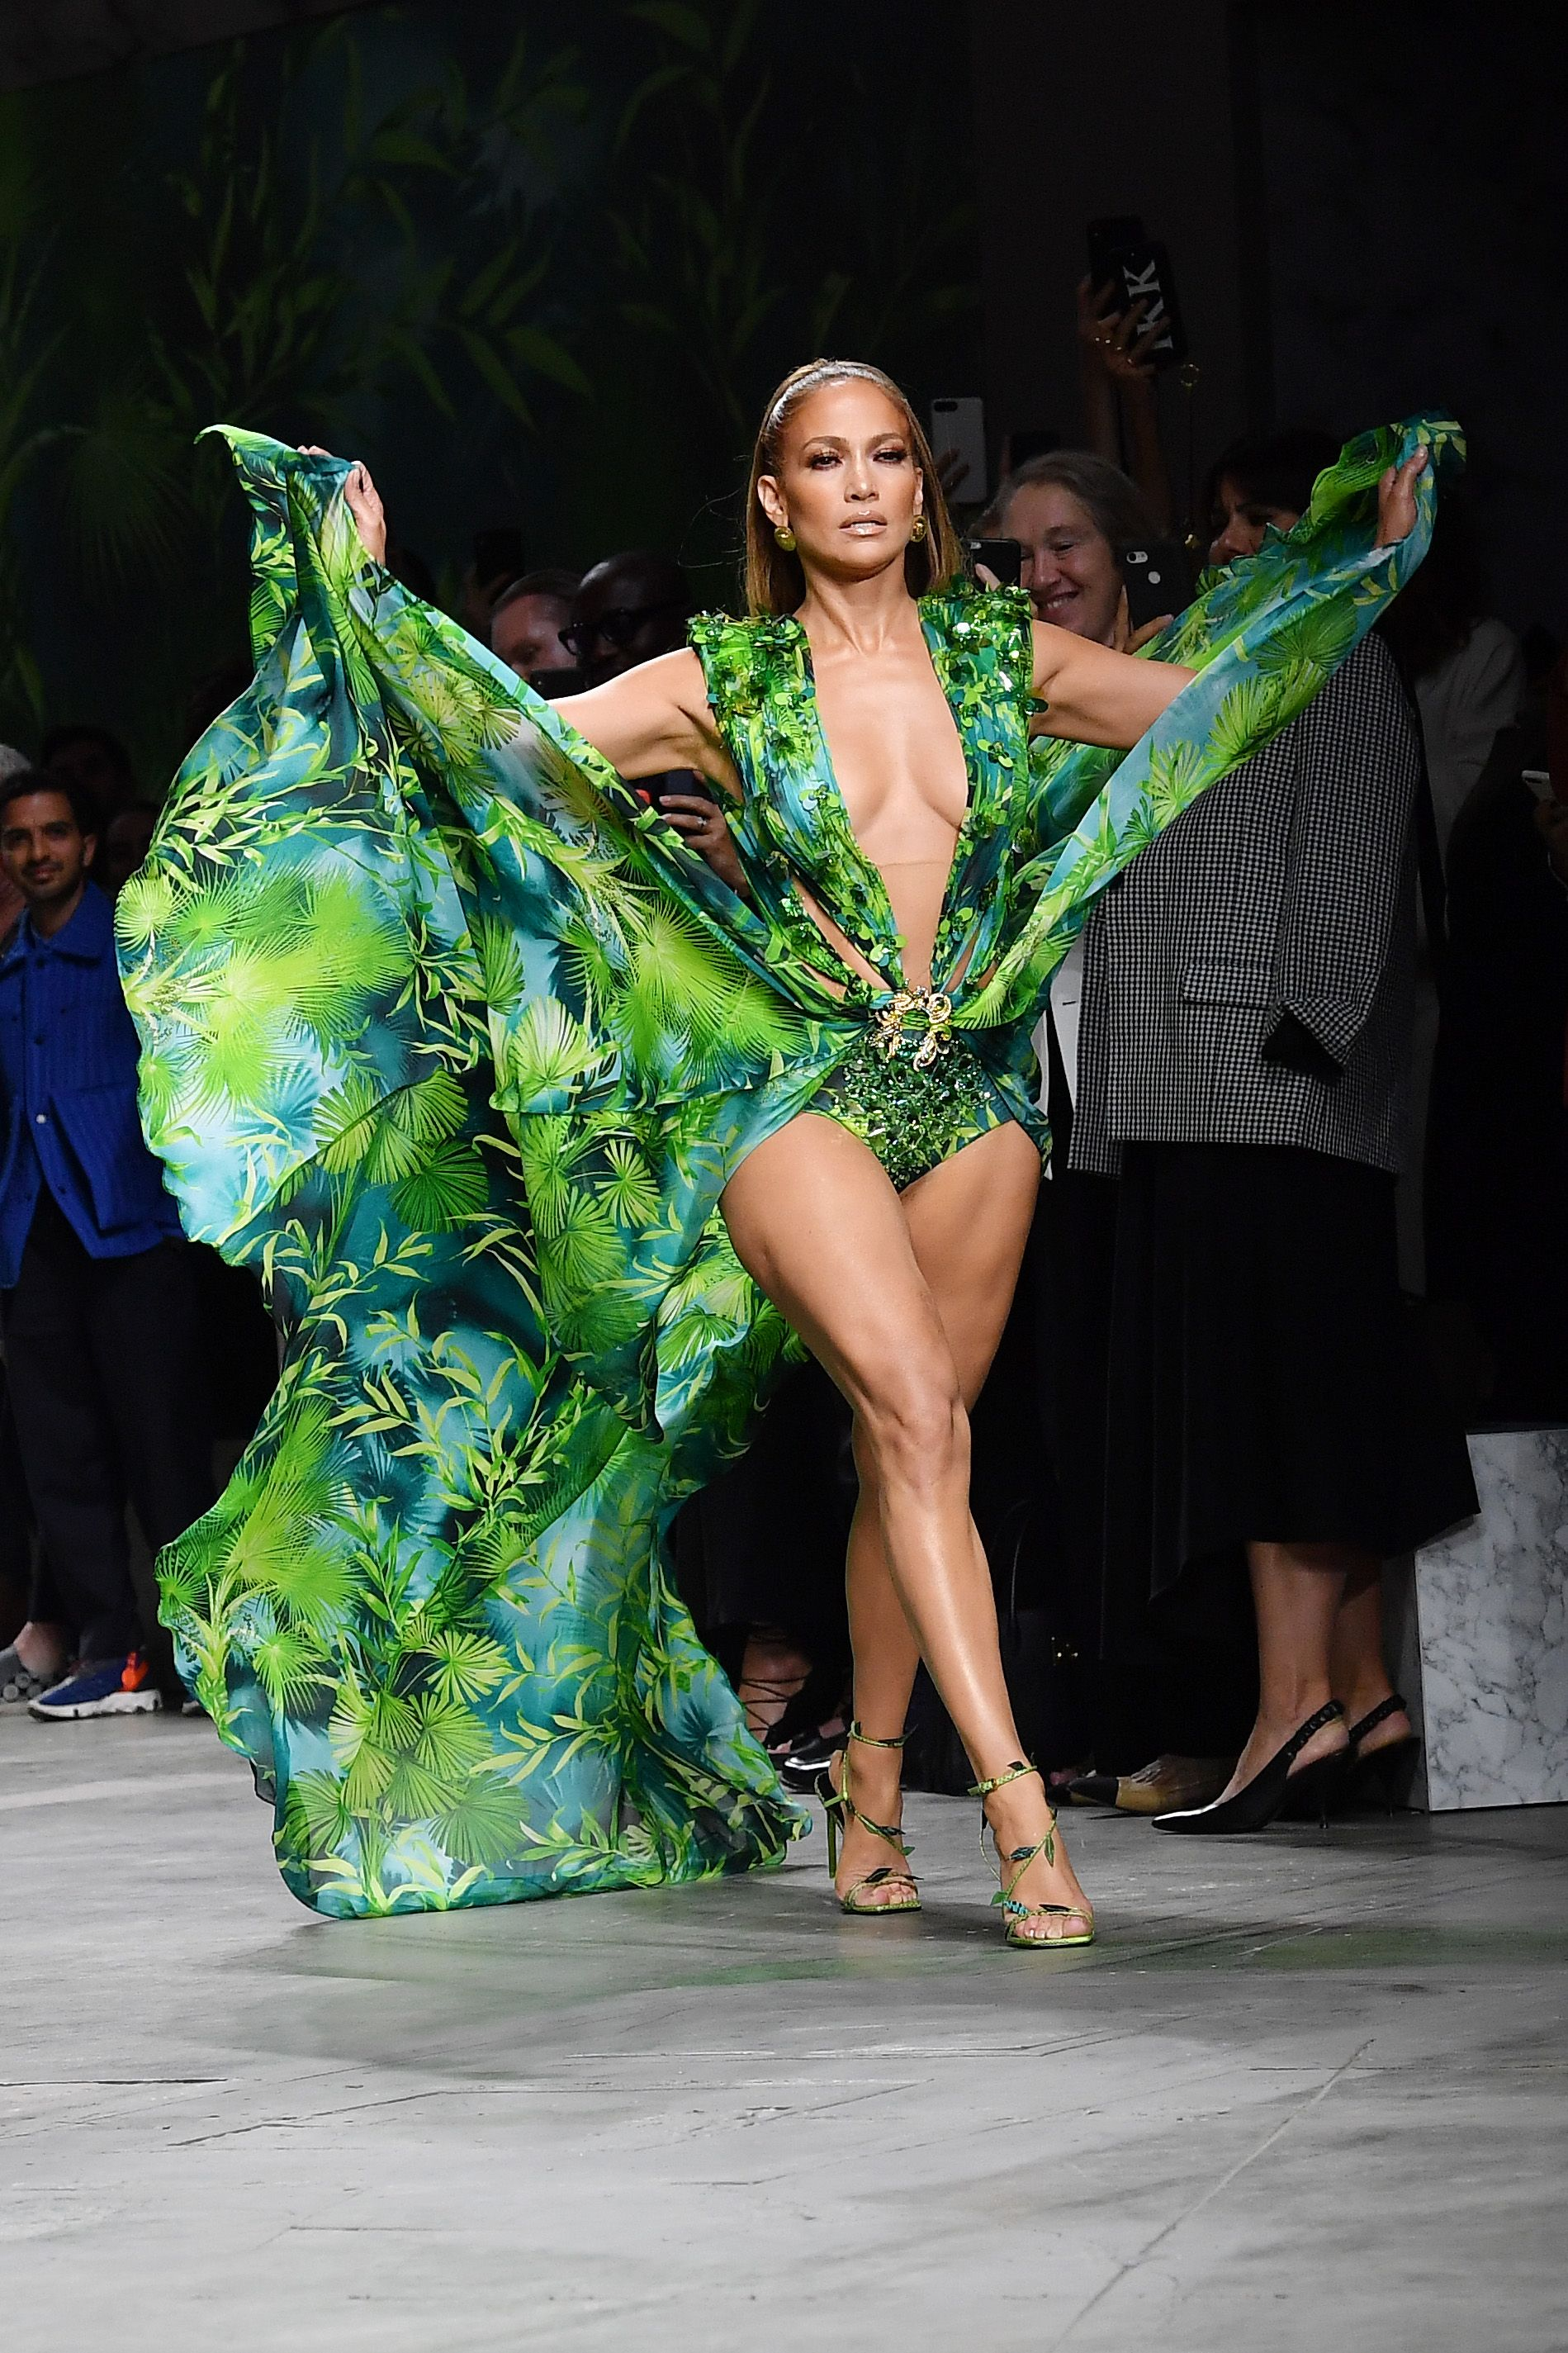 Jennifer Lopez walks the runway during the Milan Fashion Week for the Versace show on September 20, 2019, in Milan, Italy | Source: Jacopo Raule/Getty Images